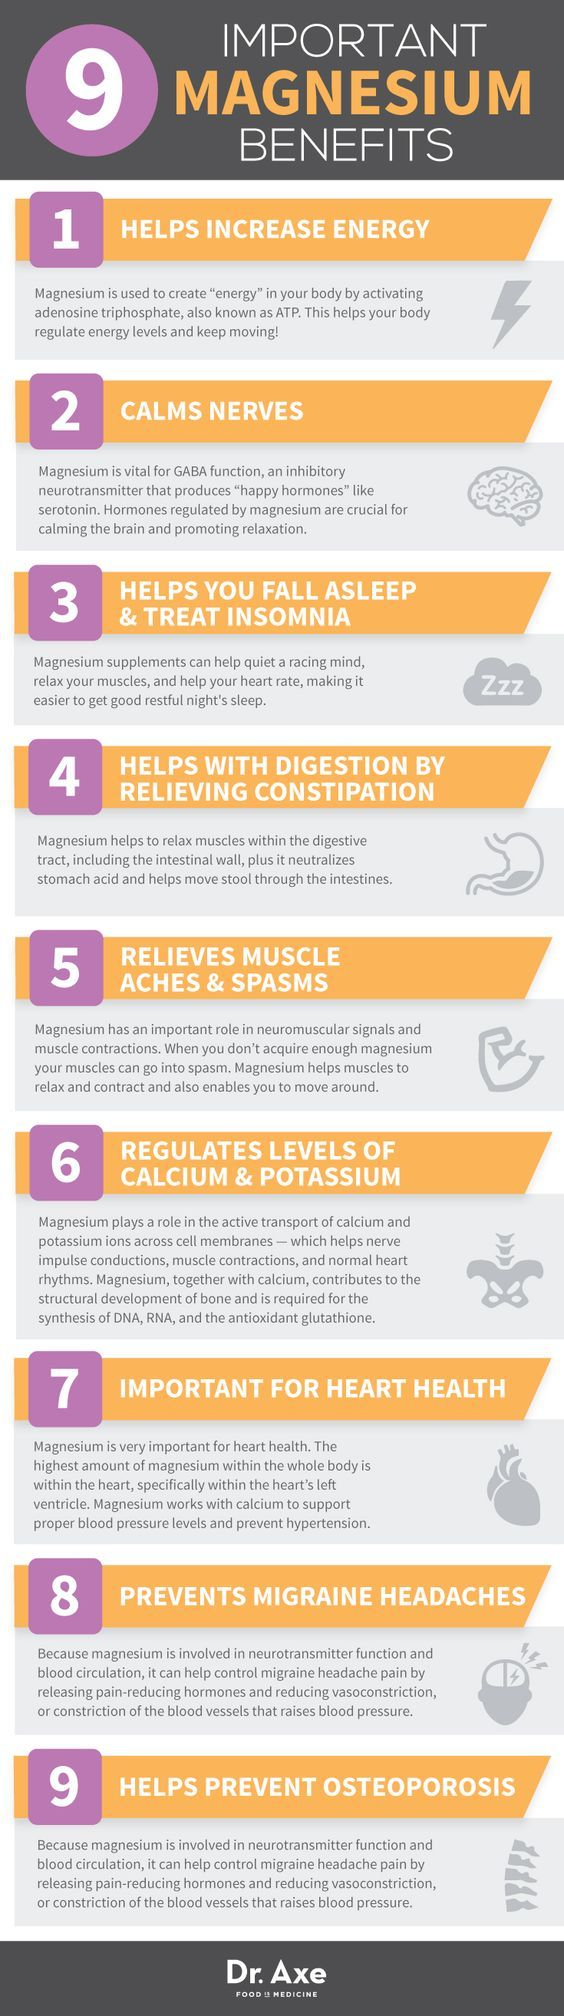 Magnesium Benefits - I was having horrible issues after my surgery and cancer recovery, at first we thought they were related to thyroid function but all my tests were getting better, though my symptoms were not. After many blood test for all kinds of thi